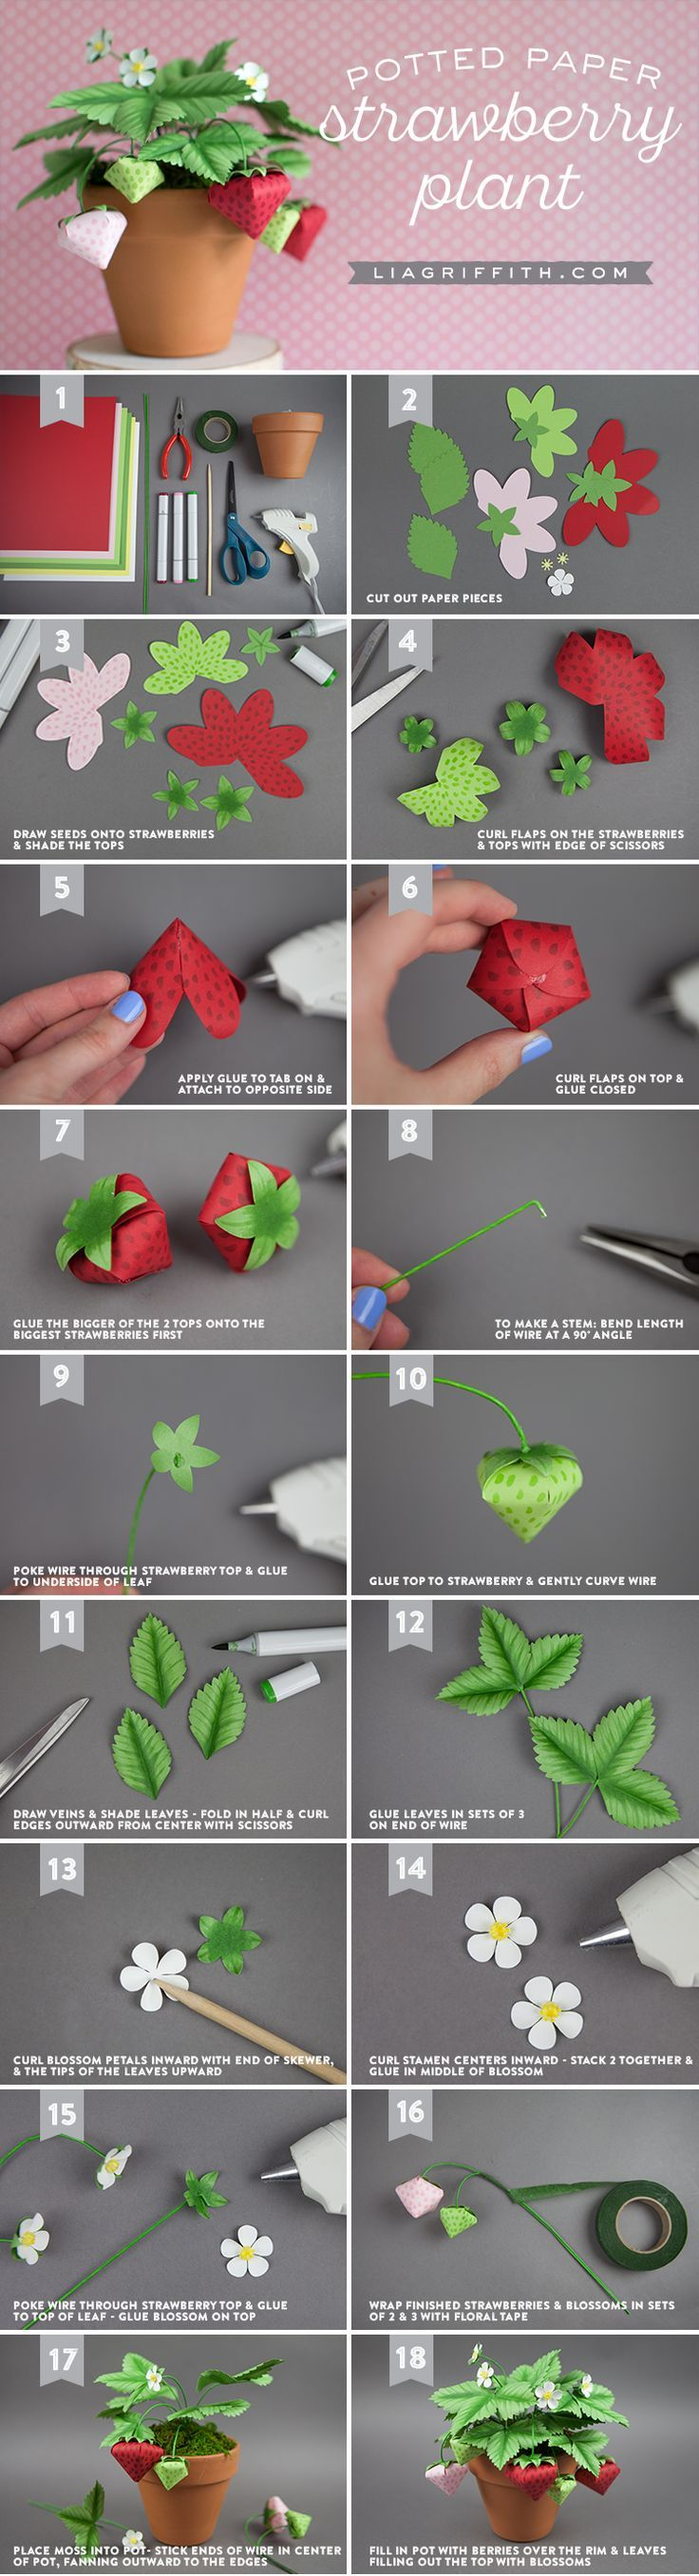 Pinterest images and photos about DIYCrafts on PixStats